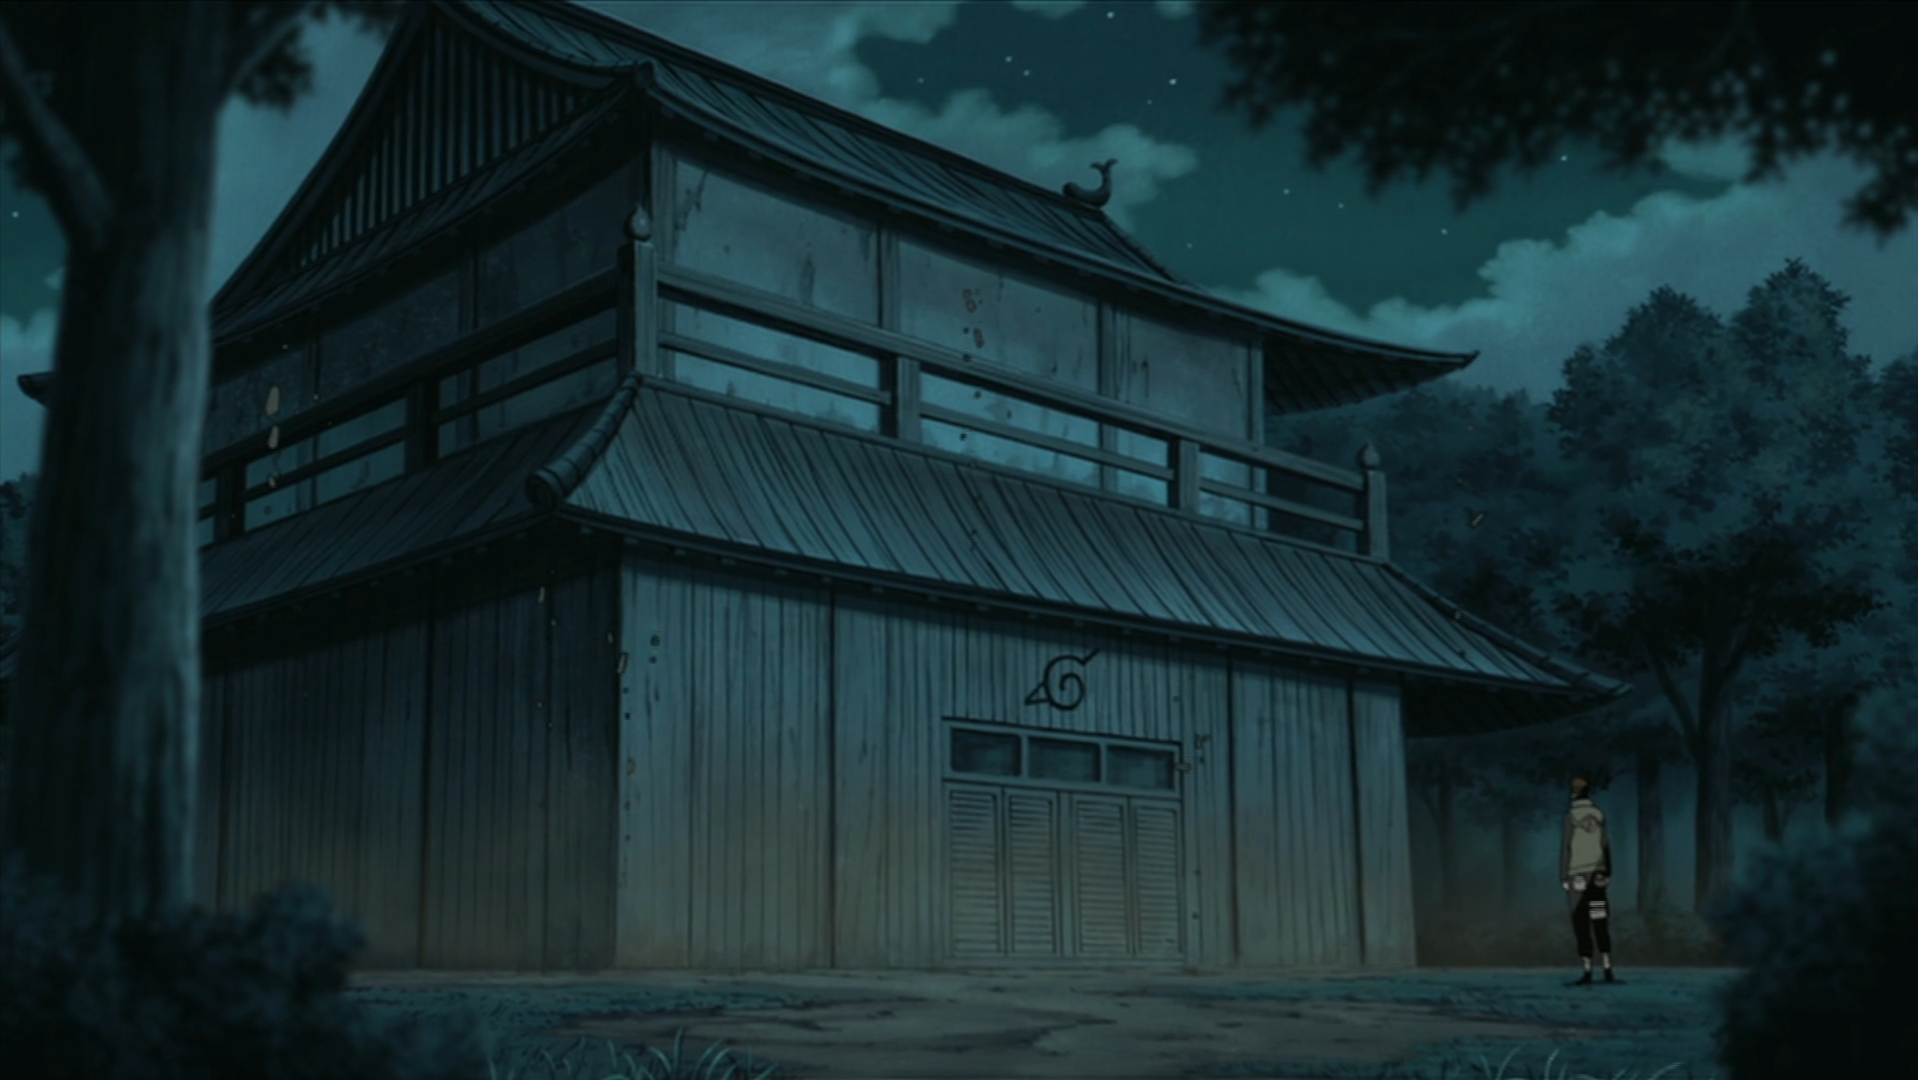 https://vignette.wikia.nocookie.net/naruto/images/4/42/Wood_Style%2C_Four_Pillars_House_Anime.png/revision/latest?cb=20160425183026